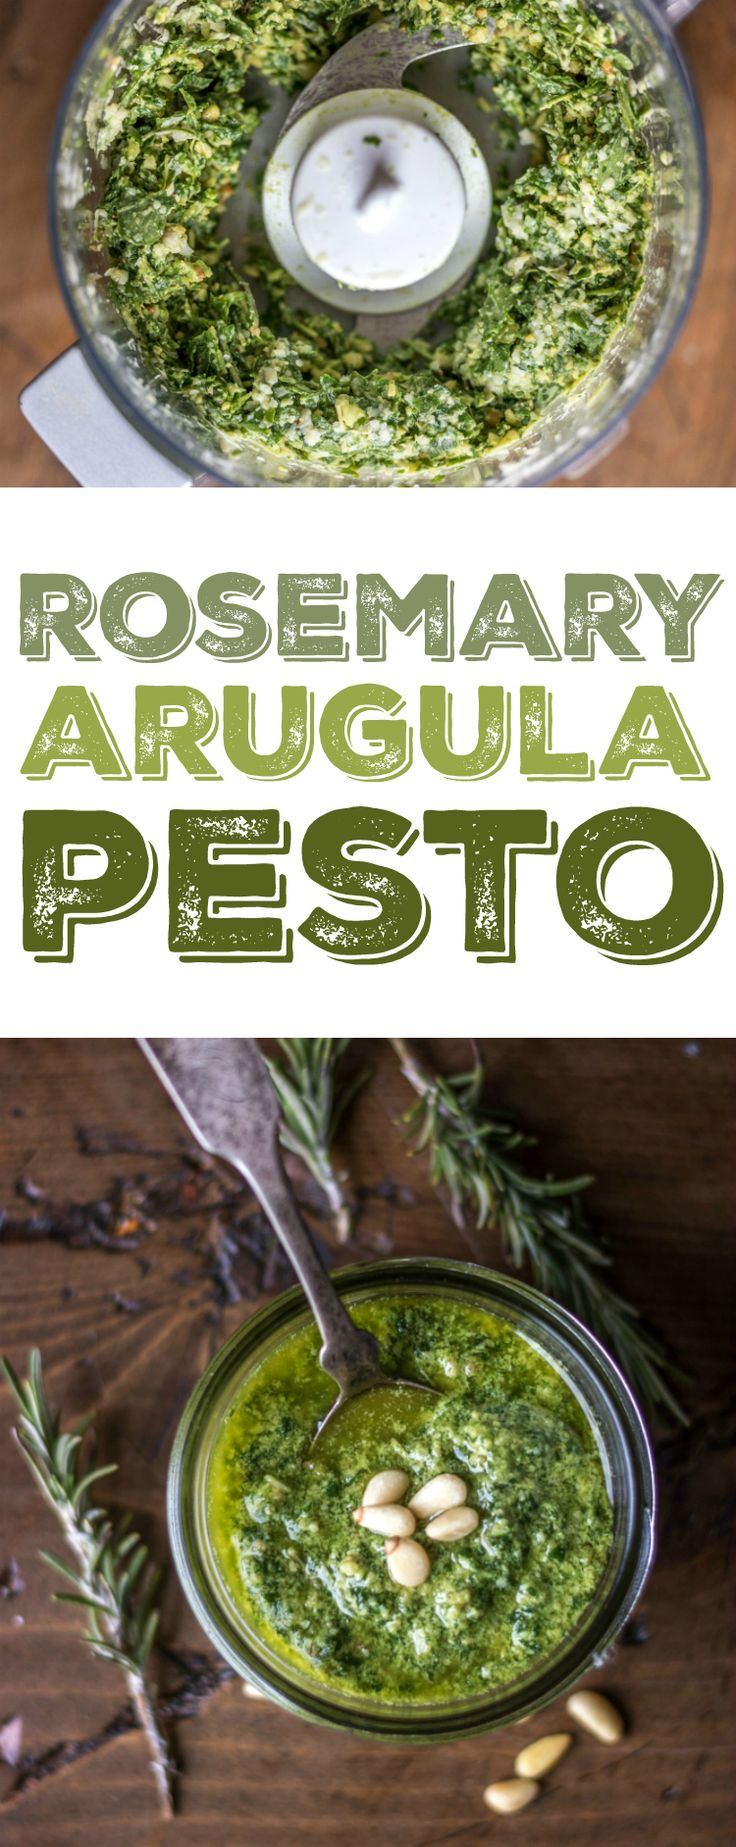 This homemade Rosemary Arugula Pesto takes just 5 minutes to make -- try it on anything from pasta to fish!